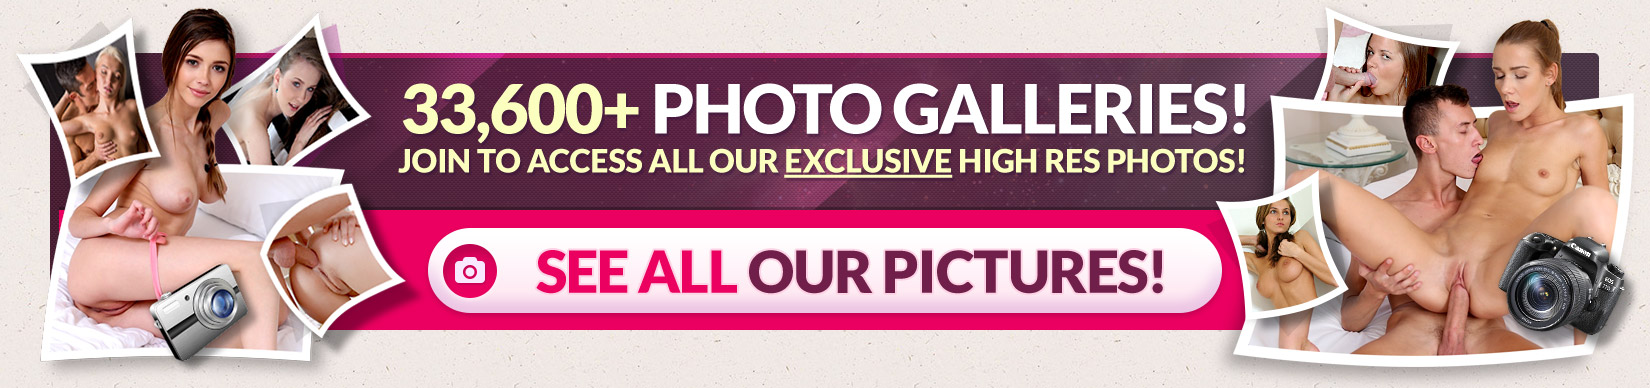 Join to watch all exclusive high res photos!